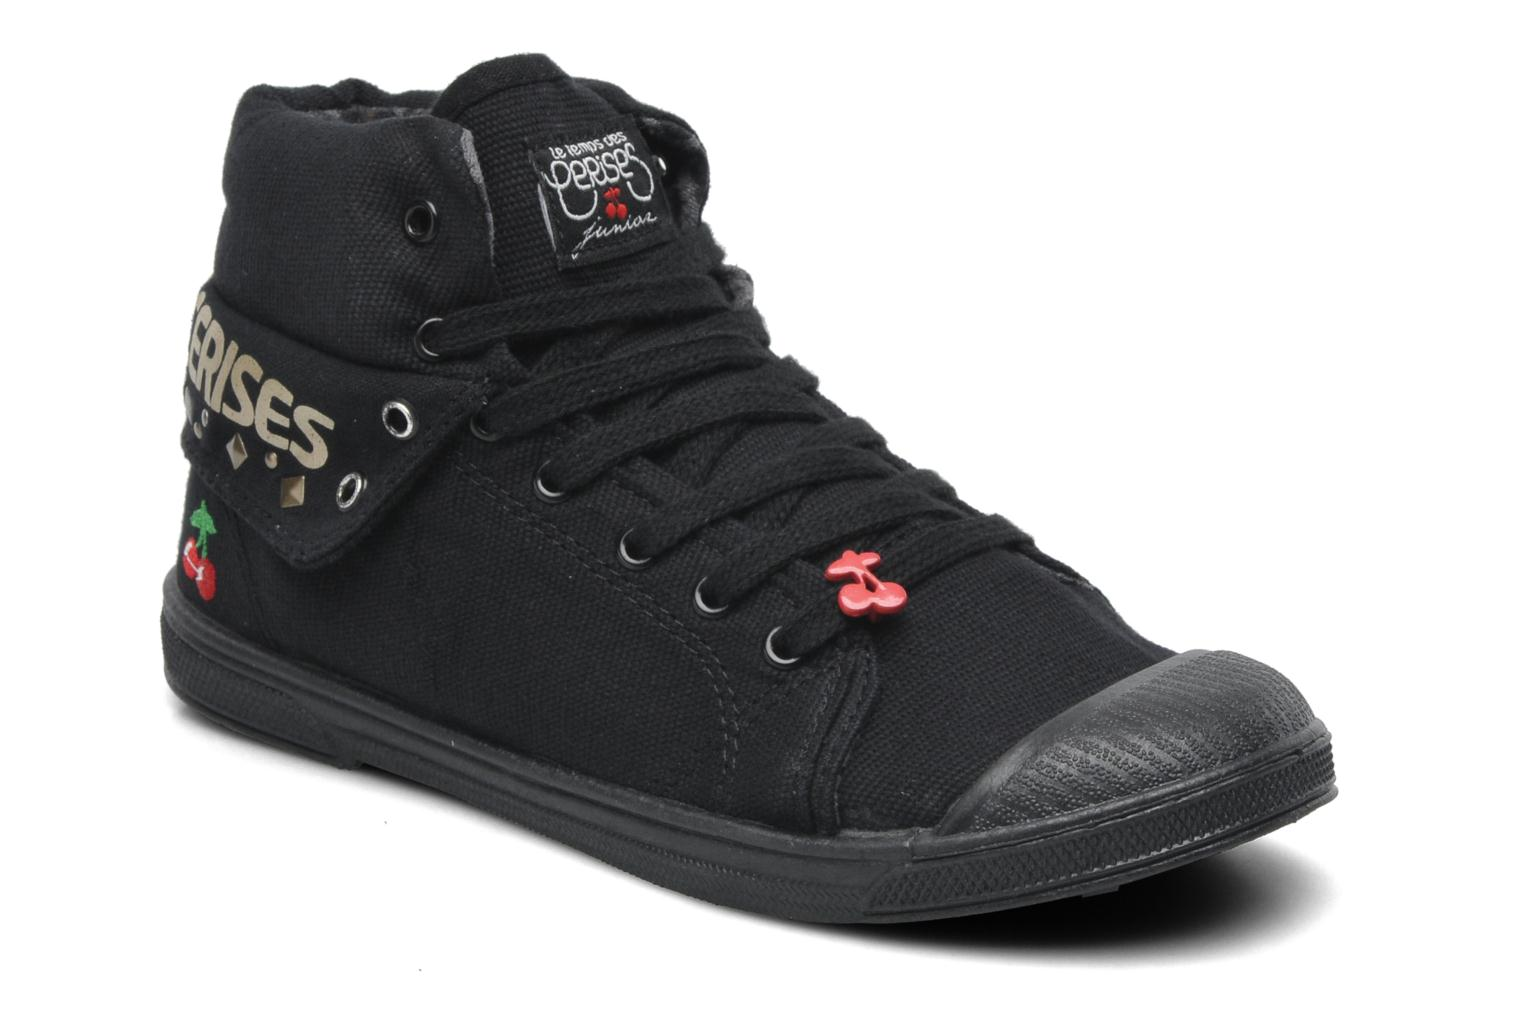 Sneakers Basic 03 Revers by Le temps des cerises